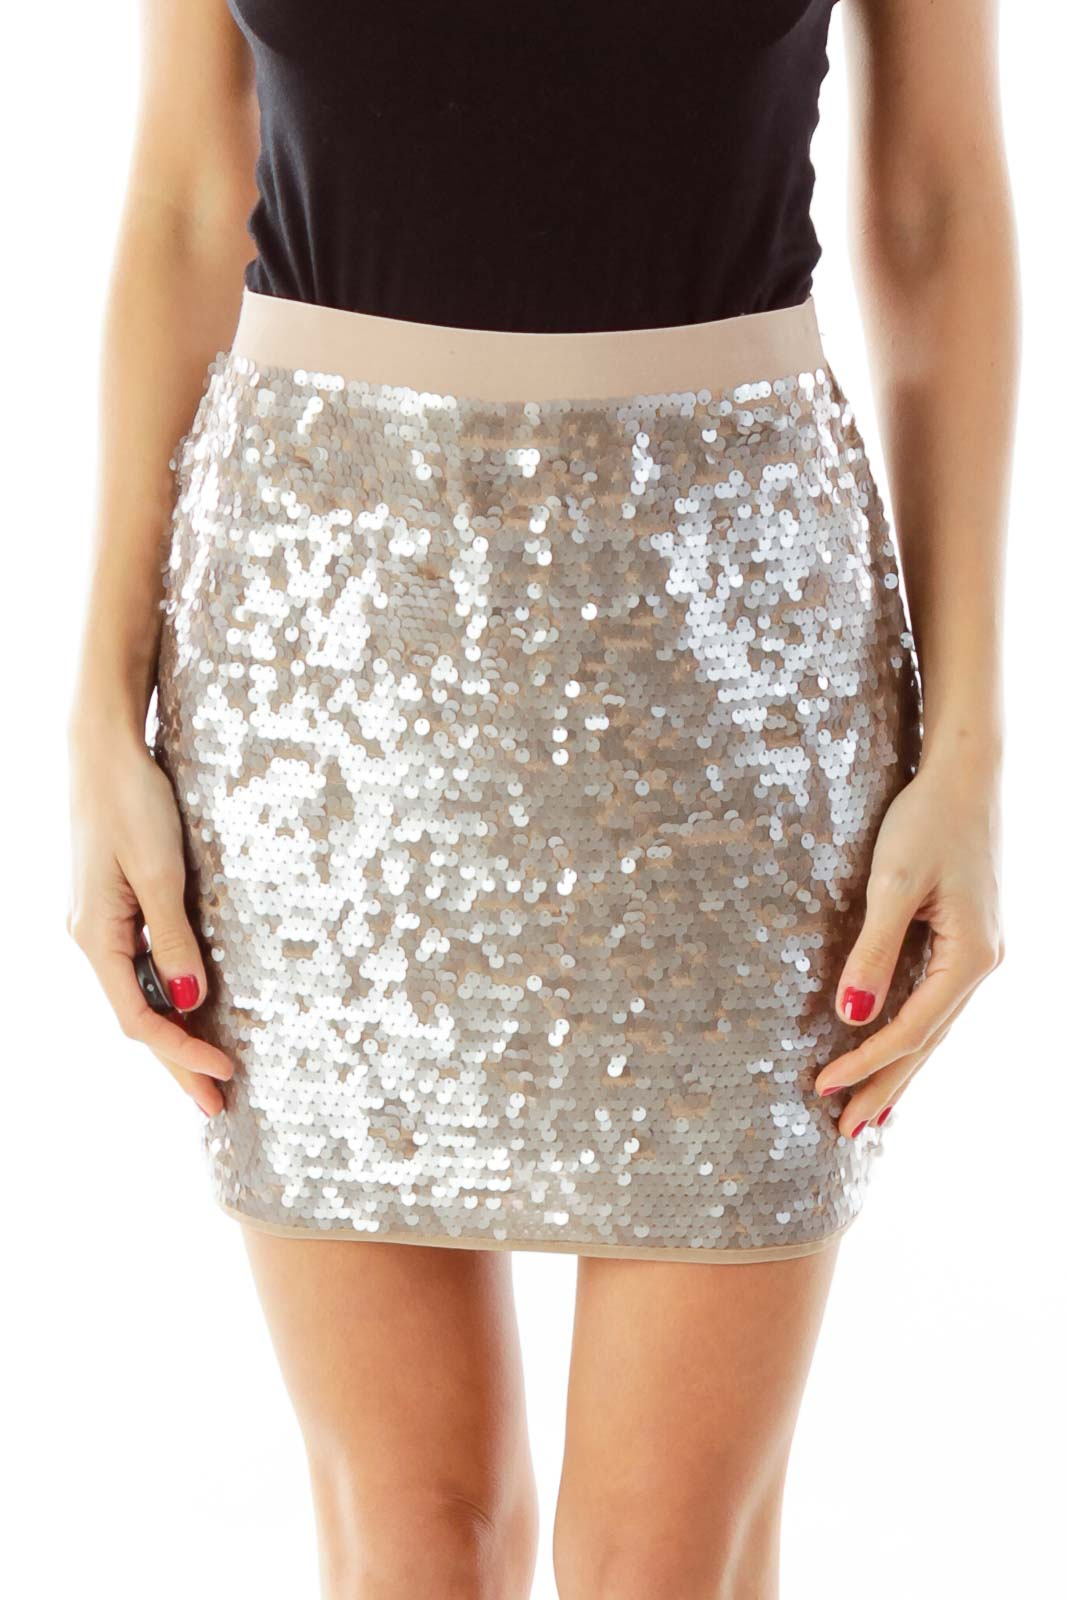 60bc31d47 Shop Champaign Sequin Mini Skirt clothing and handbags at SilkRoll. Trade  with us!